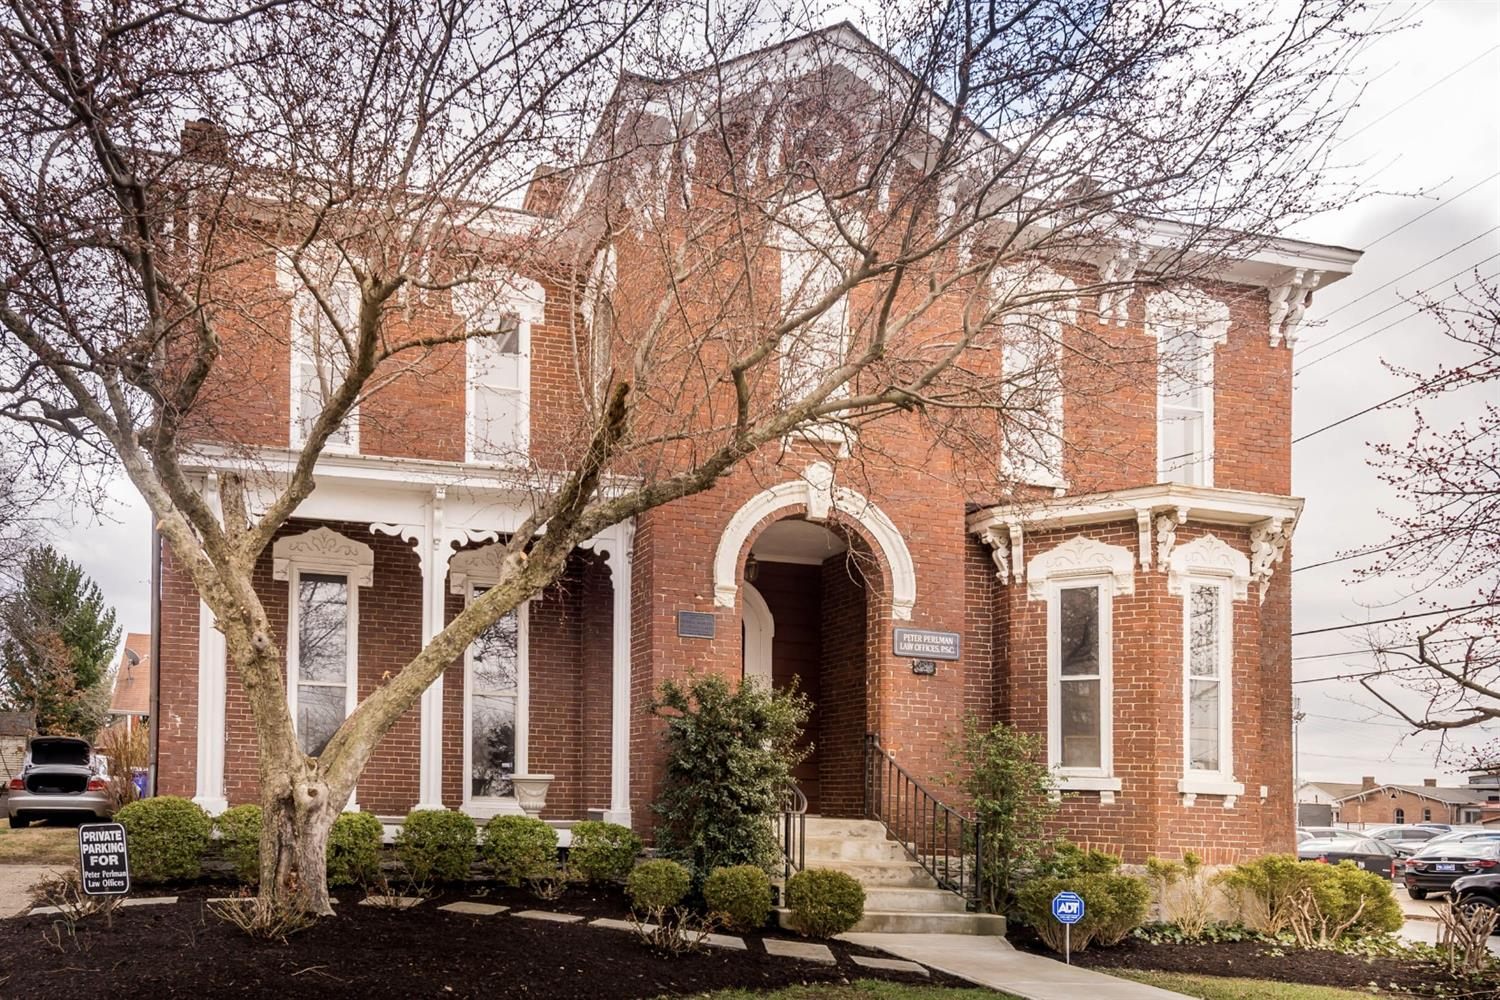 This%20one-of-a-kind%20Italianate%20home%20offers%20an%20awesome%20opportunity%20to%20any%20entrepreneur%20who%20desires%20the%20convenience%20of%20never%20having%20to%20drive%20to%20work.%20%20It%20was%20previously%20a%20well-respected%20law%20office%20and,%20after%20numerous%20updates,%20would%20make%20a%20wonderful%20art%20gallery,%20professional%20office,%20property%20management,%20upscale%20antique%20market,%20medical%20specialists,%20etc.%20%20%20The%20grand%20front%20entry%20and%20adjacent%20large%20open%20salons%20provide%20the%20perfect%20setting%20for%20any%20of%20these%20uses%20and%20so%20many%20more...while%20still%20allowing%20for%20plenty%20of%20private%20living%20space%20to%20the%20rear%20of%20the%20home%20and%20in%20the%20spacious%20second%20floor.%20%20The%20massive%20foyer%20on%20the%20second%20floor,%20as%20well%20as%20the%20oversized%20four%20bedrooms%20are%20spectacular.%20%20The%20large%20basement,%20with%20separate%20rear%20entry,%20provides%20a%20great%20space%20for%20an%20antique%20store%20or%20similar%20business.%20%20This%20home%20is%20built%20for%20the%20business%20owner%20who%20wants%20to%20keep%20family%20close%20at%20hand.%20%20The%20historical%20nature%20of%20the%20home%20will%20make%20you%20the%20envy%20of%20many.